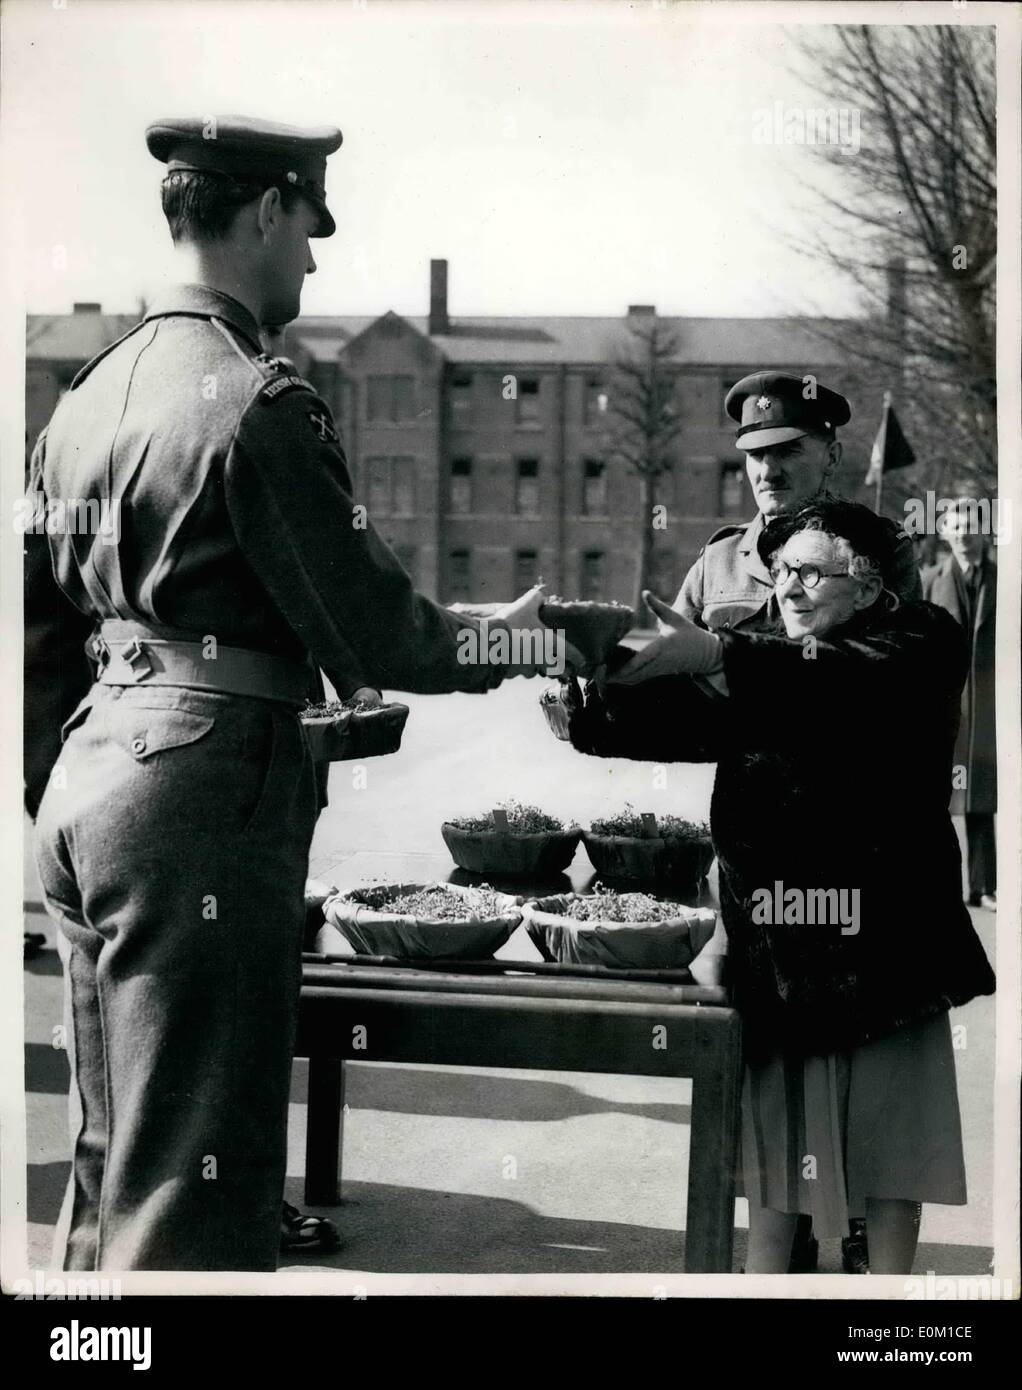 Mar. 03, 1953 - Daughter of Lord Roberts presents Shamrock to the Irish Guards. St. Patrick's day at Catherham barracks:Stock Photo